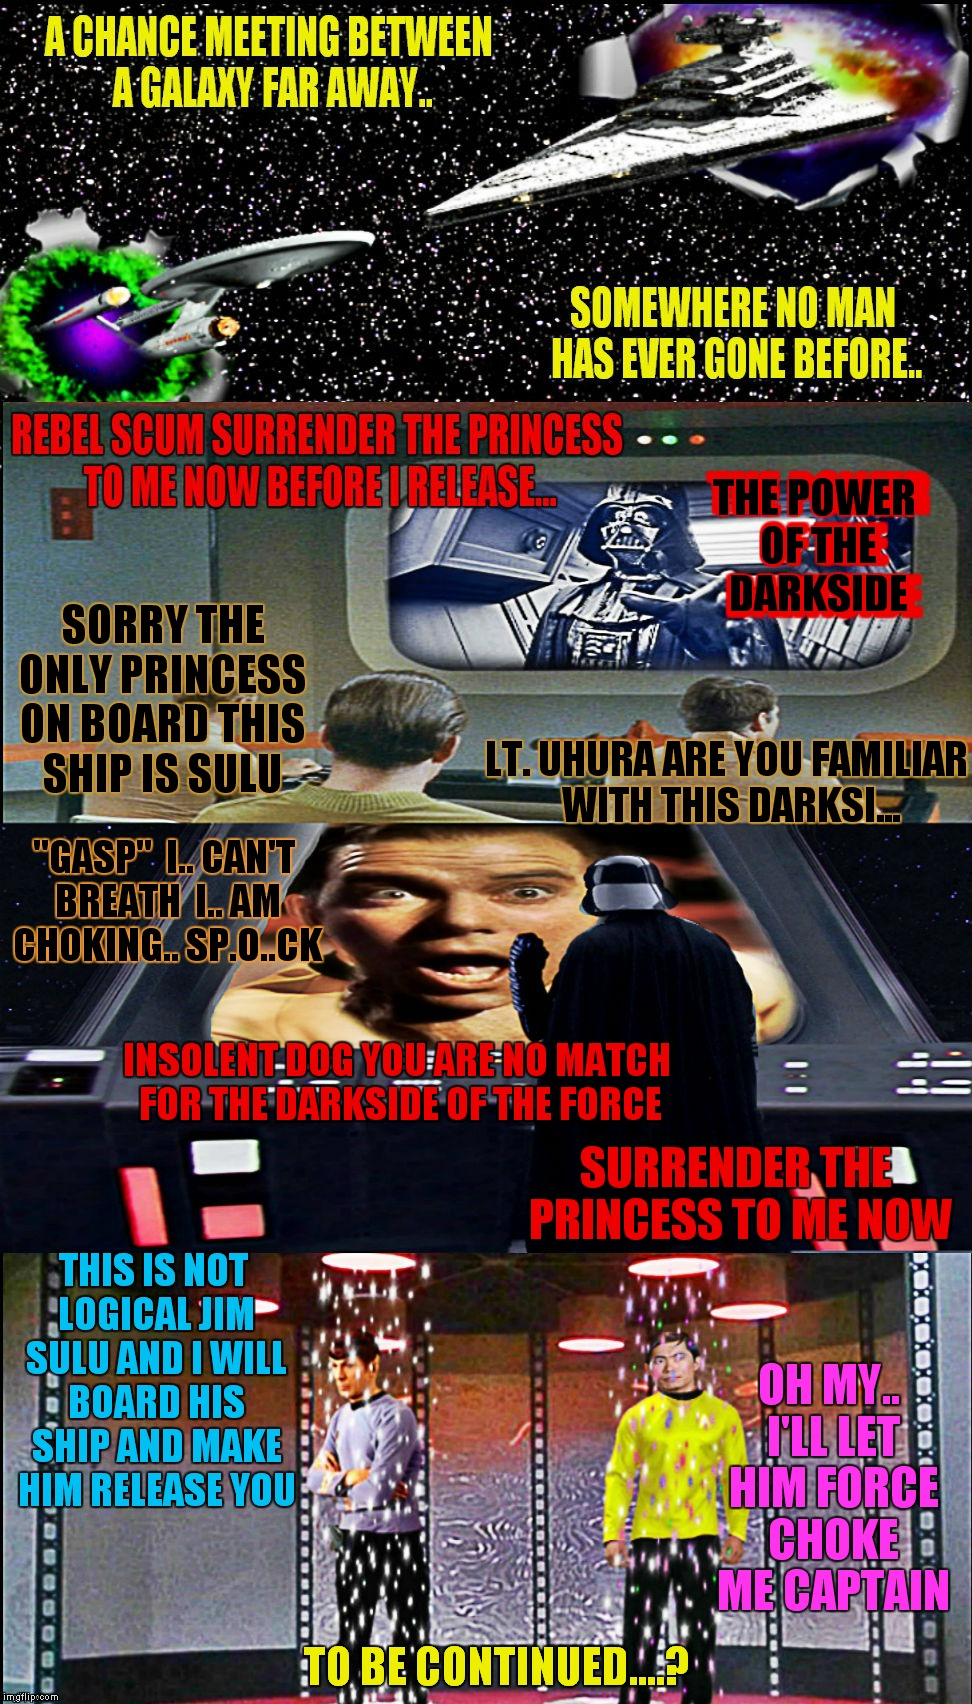 Is Kirk hiding the Princess from her Father? Will Spock be able to out logic the force? Can Sulu get a cape like Vaders??? | THE POWER OF THE DARKSIDE TO BE CONTINUED....? THE POWER OF THE DARKSIDE SORRY THE ONLY PRINCESS ON BOARD THIS SHIP IS SULU LT. UHURA ARE YO | image tagged in star wars vs star trek,star wars,star trek,meme mash up,to be continued | made w/ Imgflip meme maker